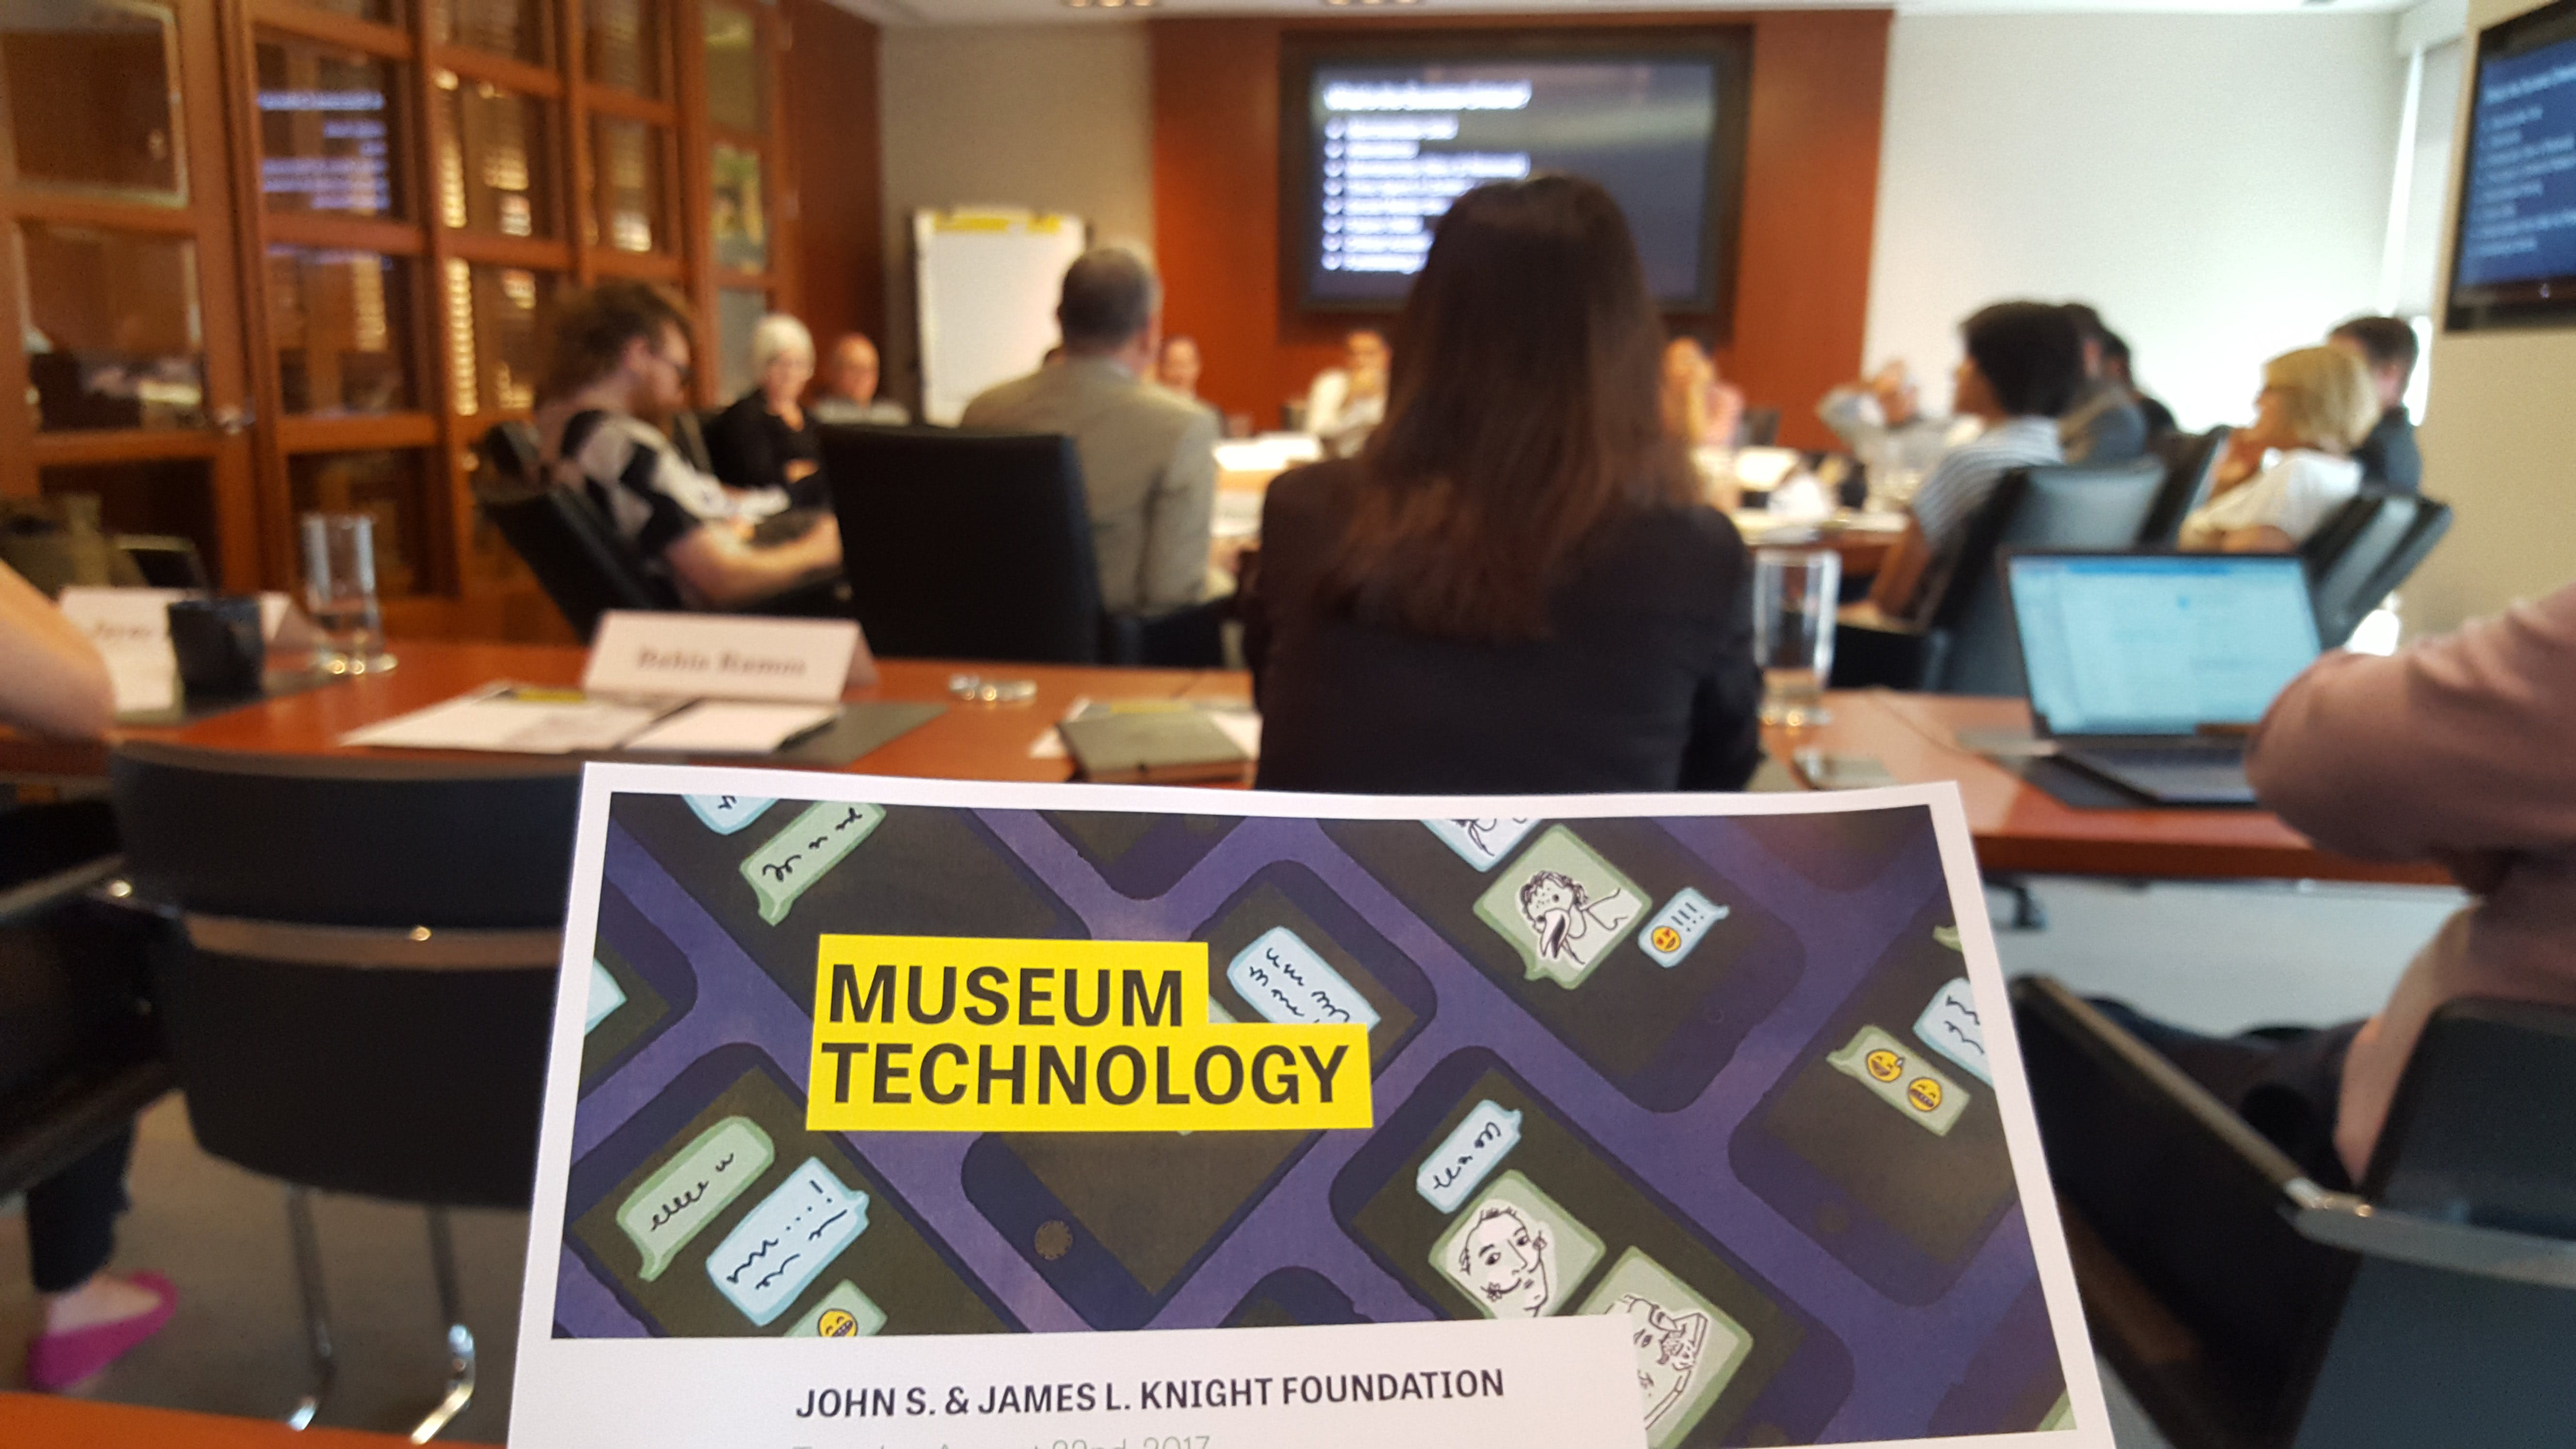 <p><em>The Aug. 22, 2017 convening on museums and the role of technology at Knight Foundation offices in Miami, Fl. </em></p>